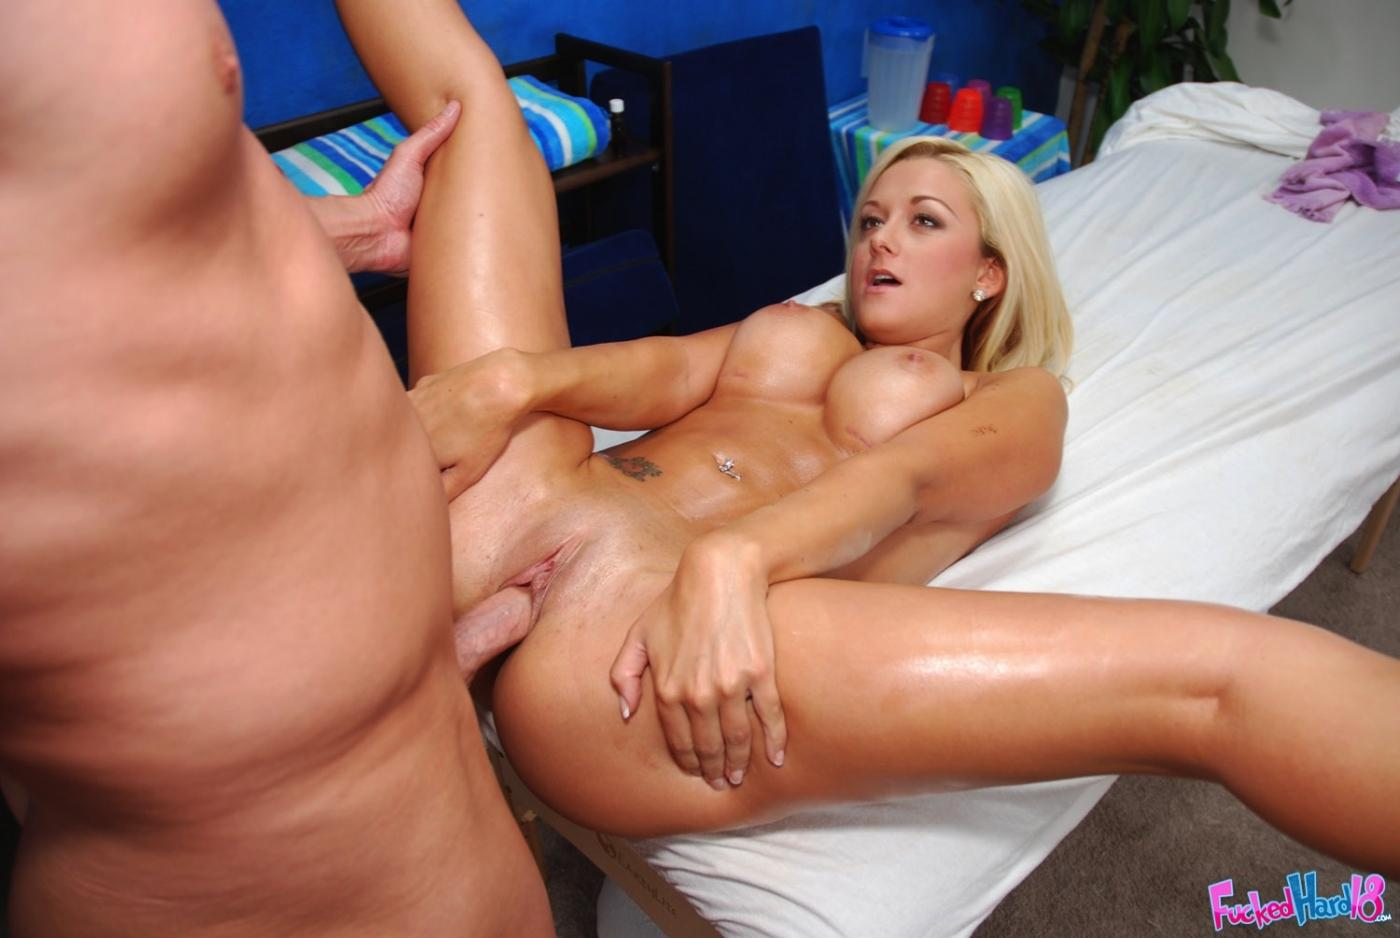 best of Gettng fucked naked chicks Hot